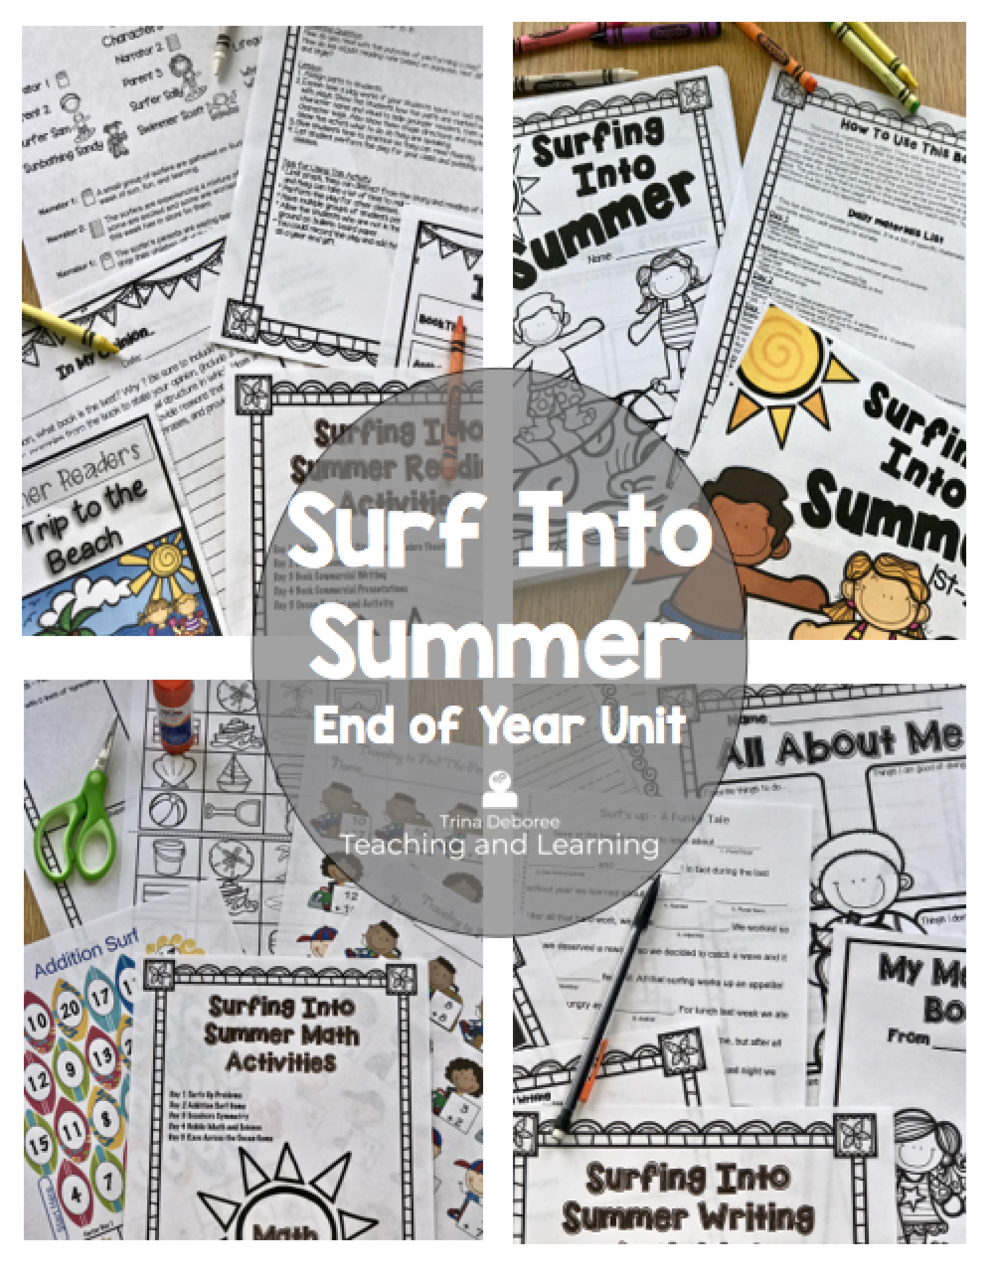 Surf Into Summer: End of Year Unit